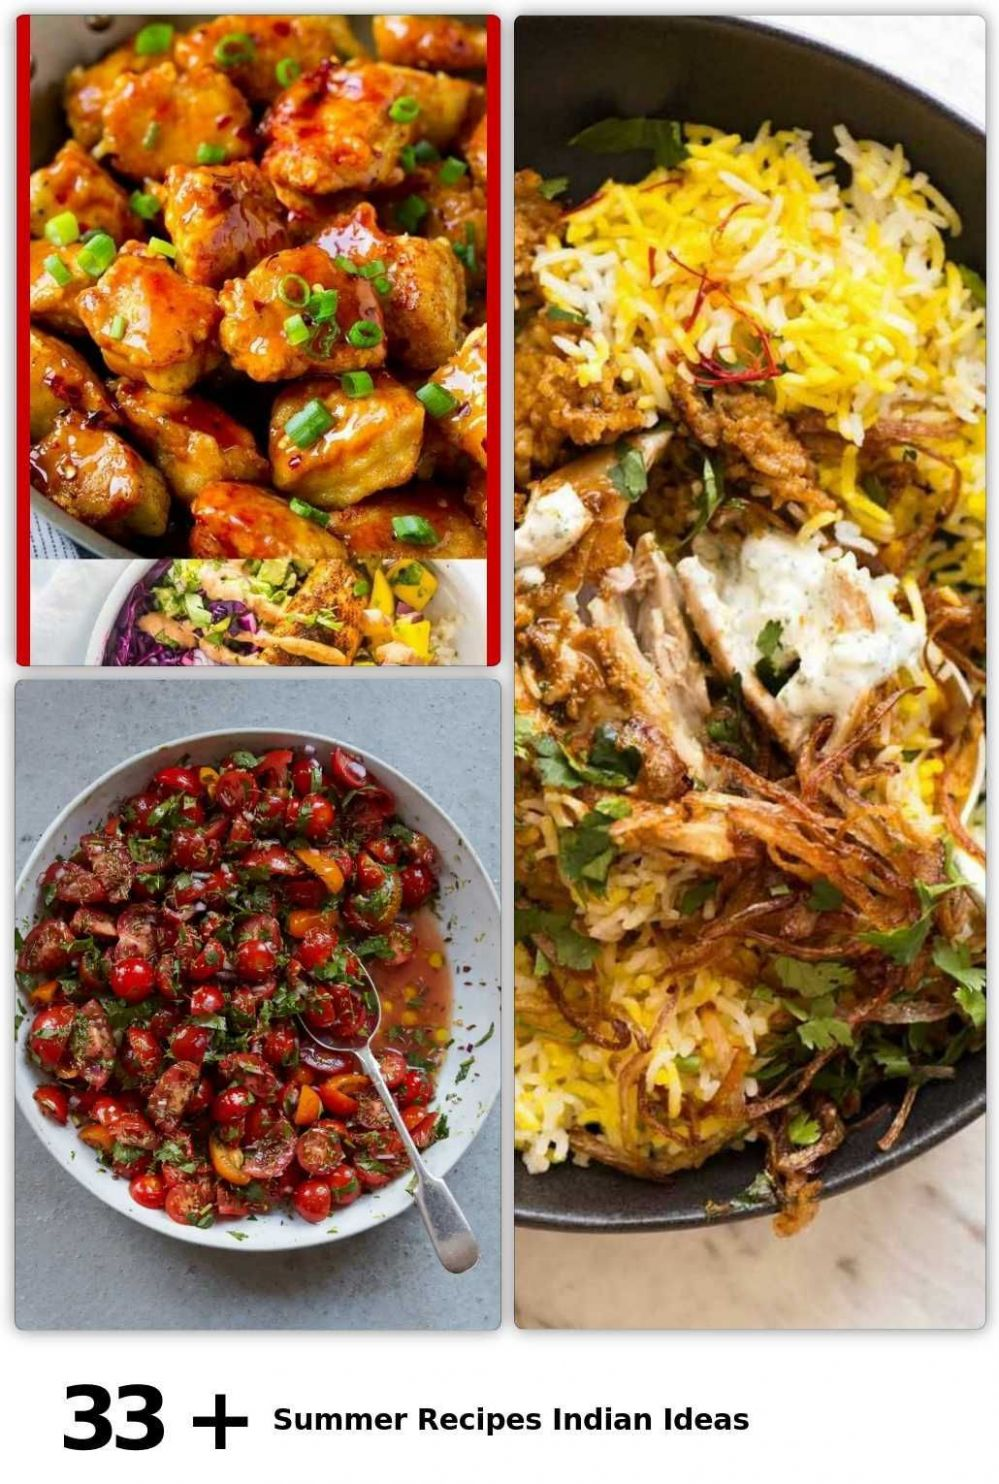 8 Summer Recipes Indian Ideas #summer recipe indian in 8 ...